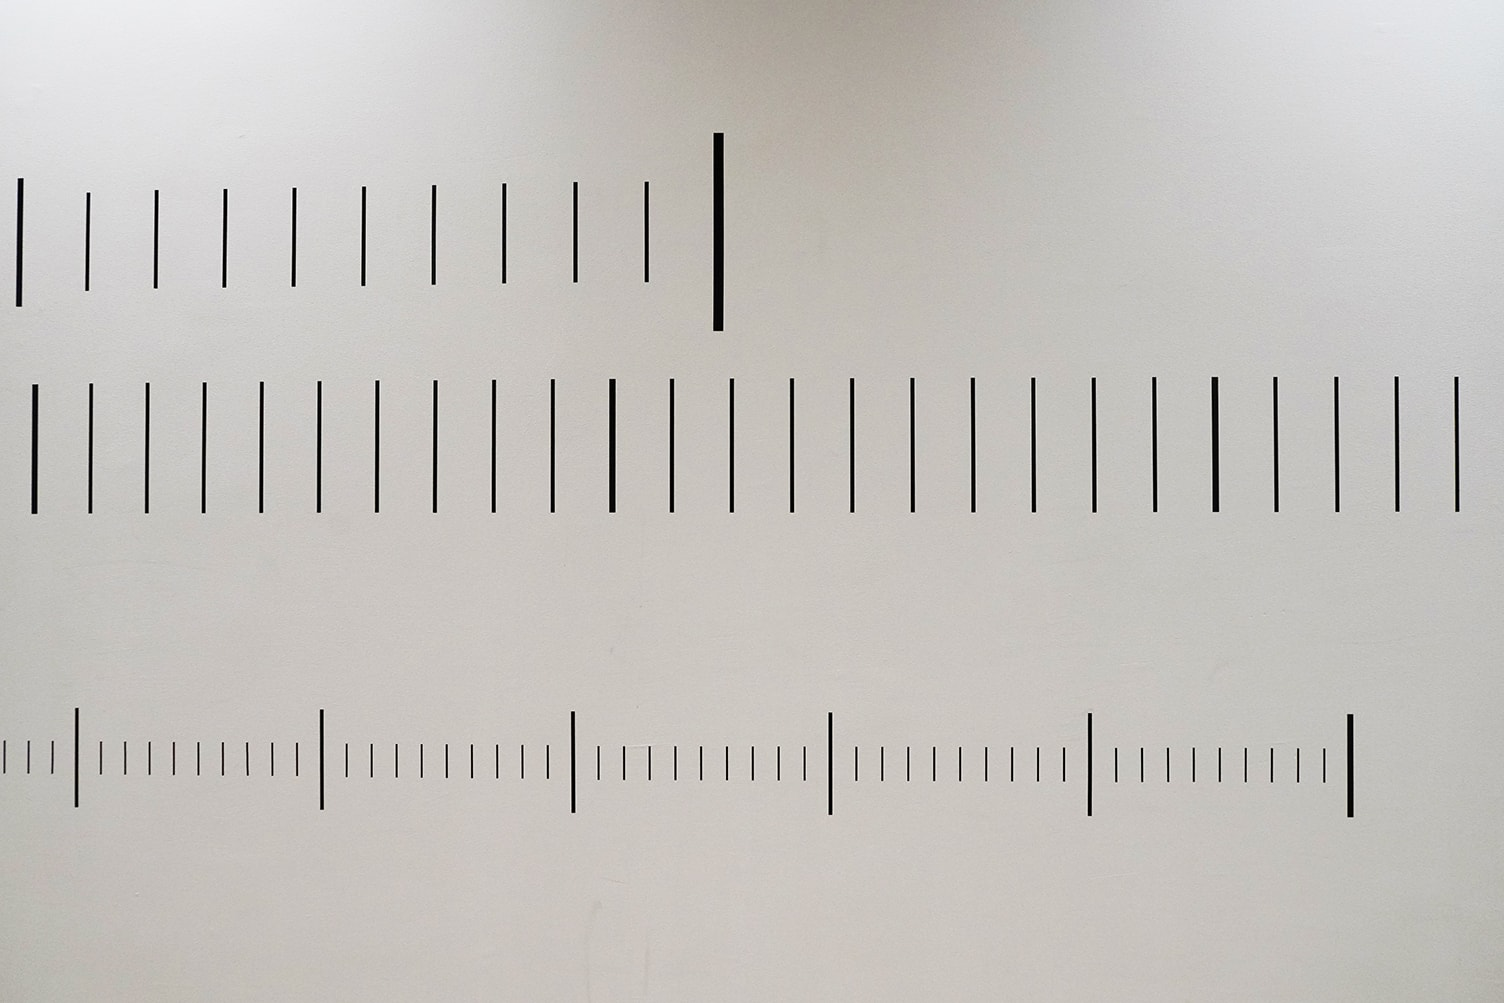 Sara Morawetz, 'Metric Units for the Solar System [Metric Schematic]', 2019, cut vinyl, 14m long